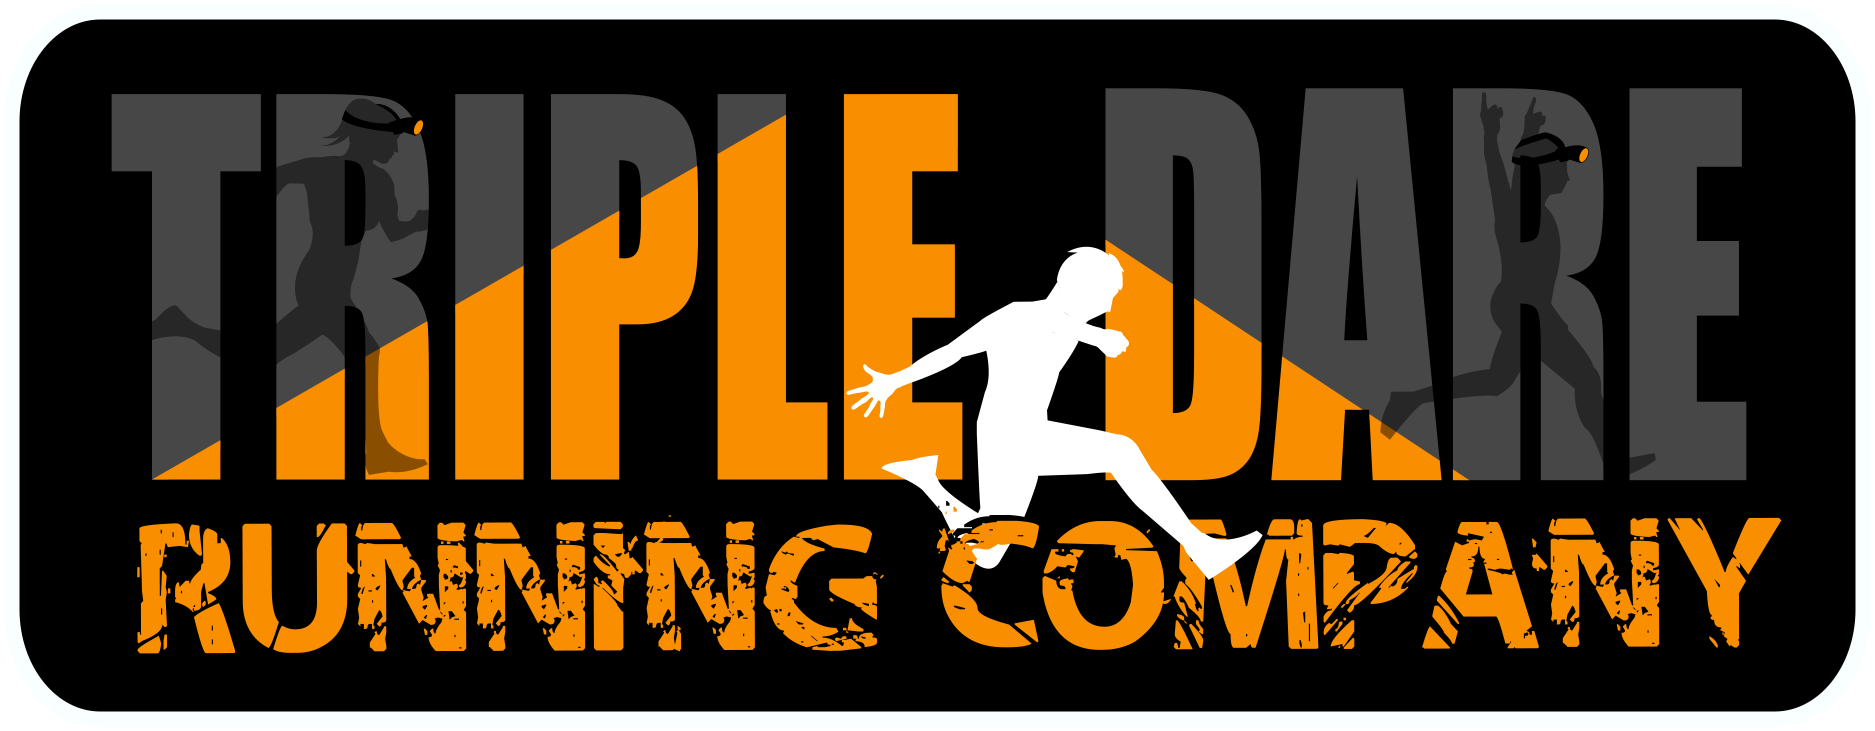 Triple Dare Main Logo2